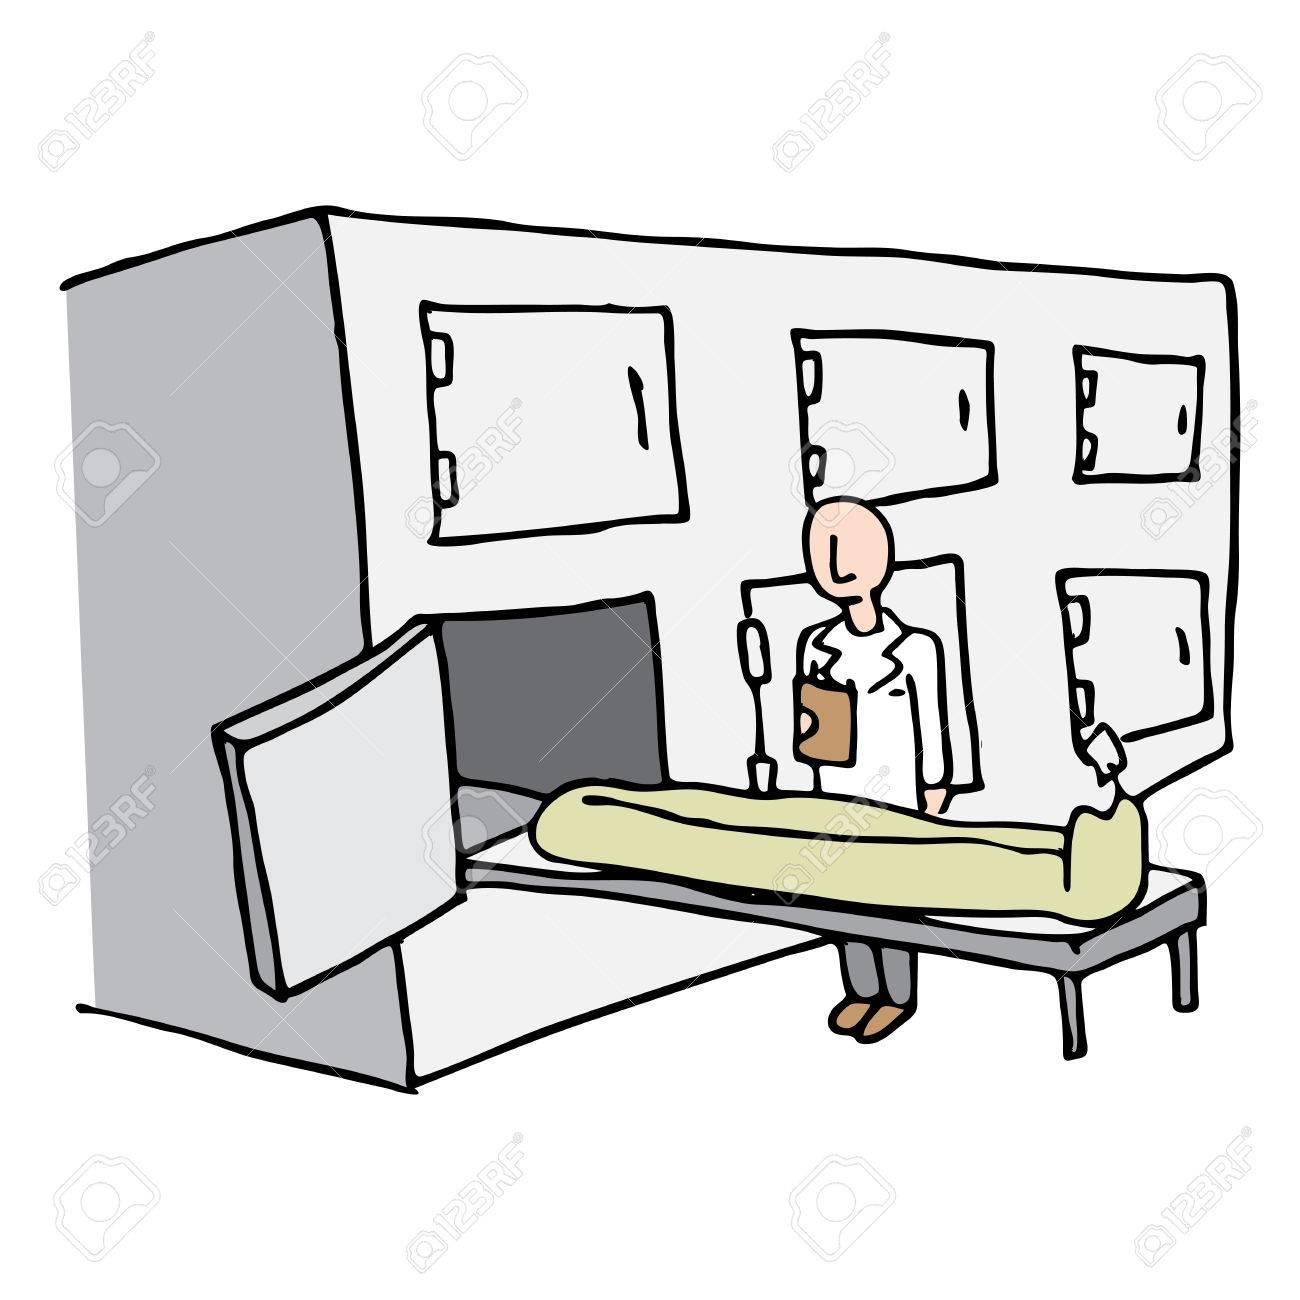 An image of a Coroner Morgue Room..